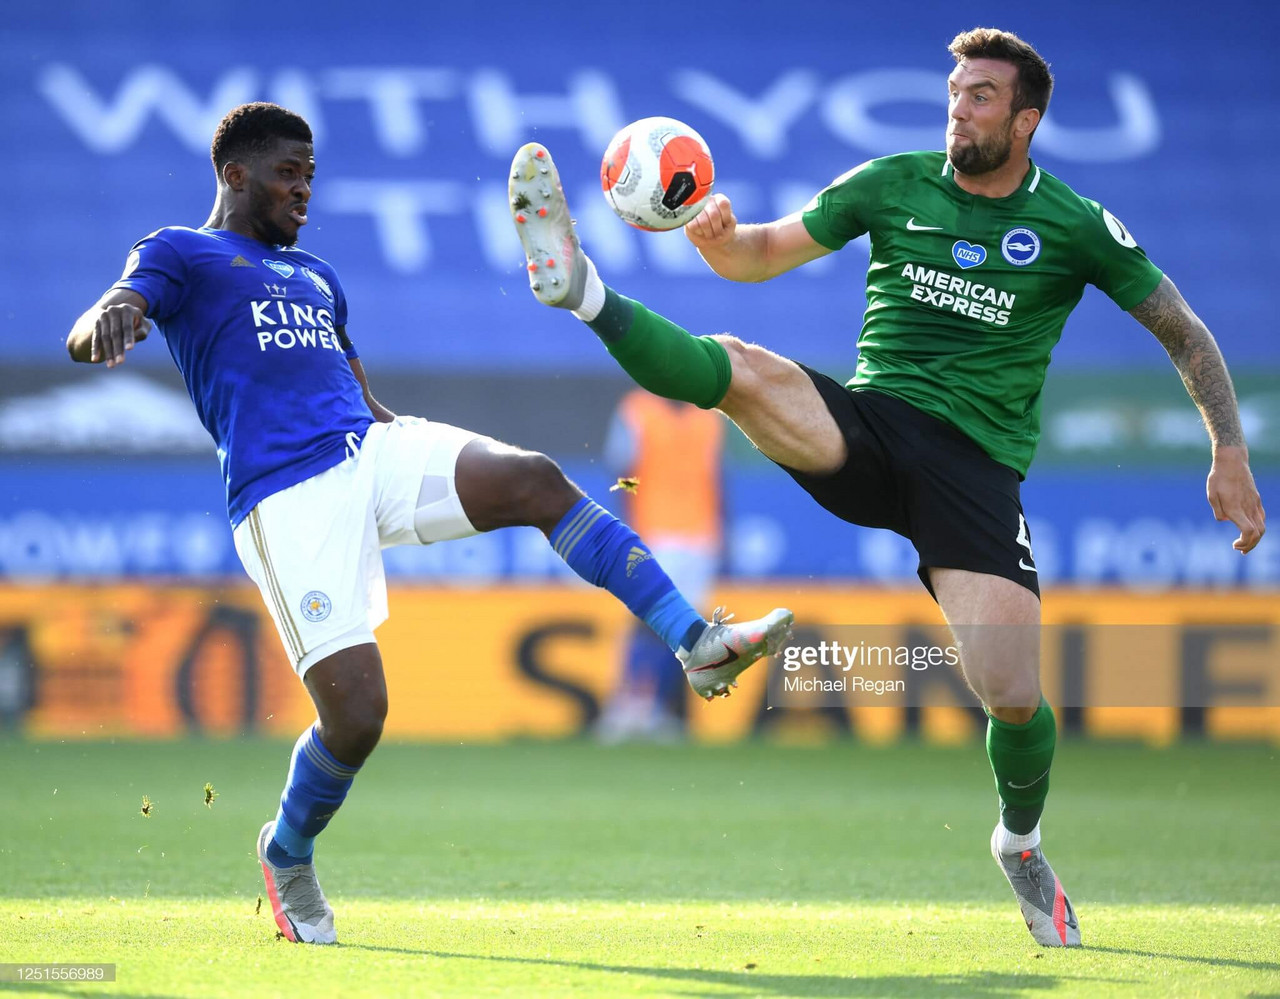 Leicester City vs Brighton & Hove Albion: Three matchups to watch